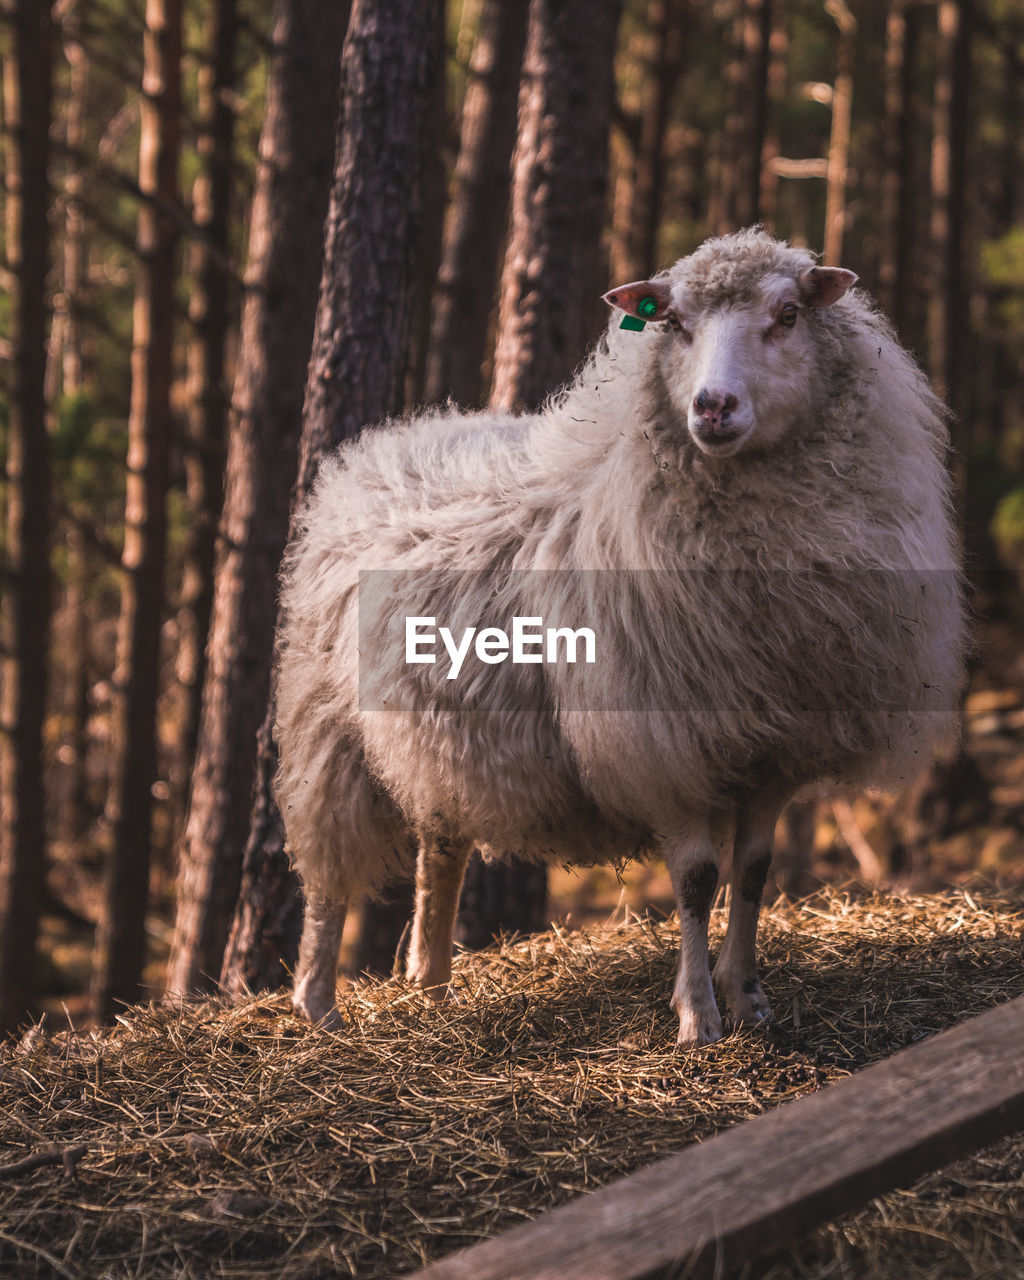 animal themes, animal, land, mammal, tree, vertebrate, livestock, forest, one animal, domestic animals, pets, domestic, plant, nature, field, standing, day, no people, sheep, trunk, outdoors, woodland, herbivorous